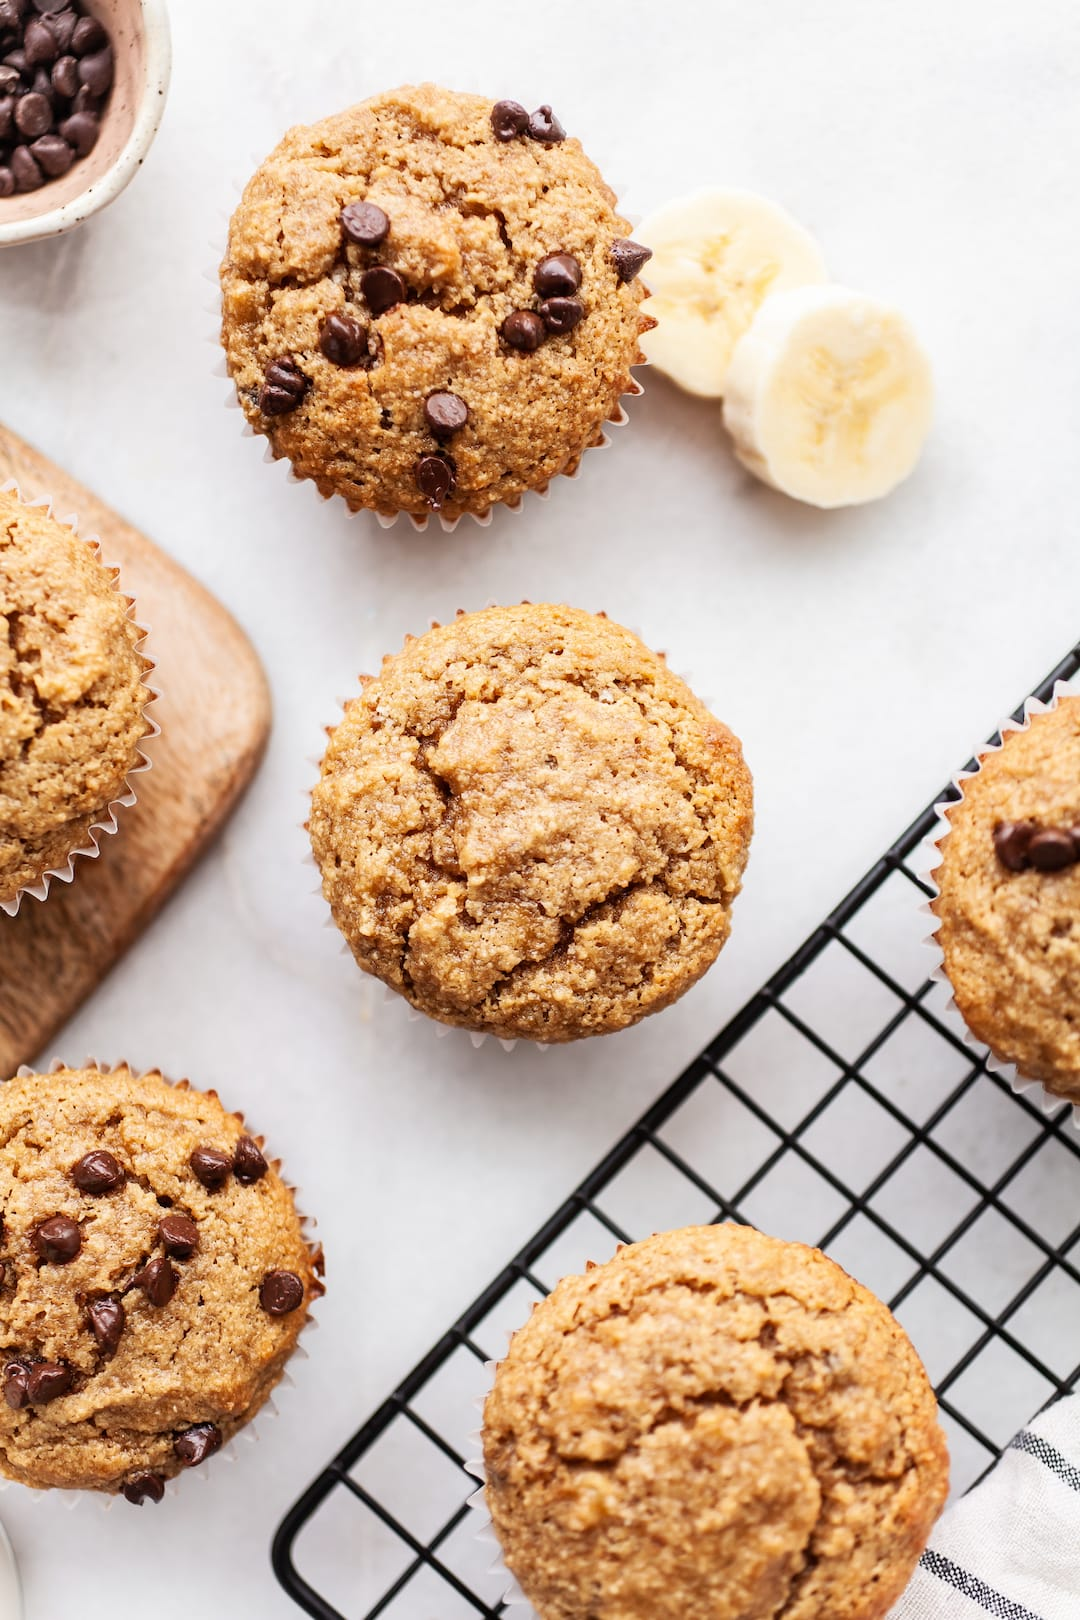 Overhead view of Easy Almond Flour Banana Muffins